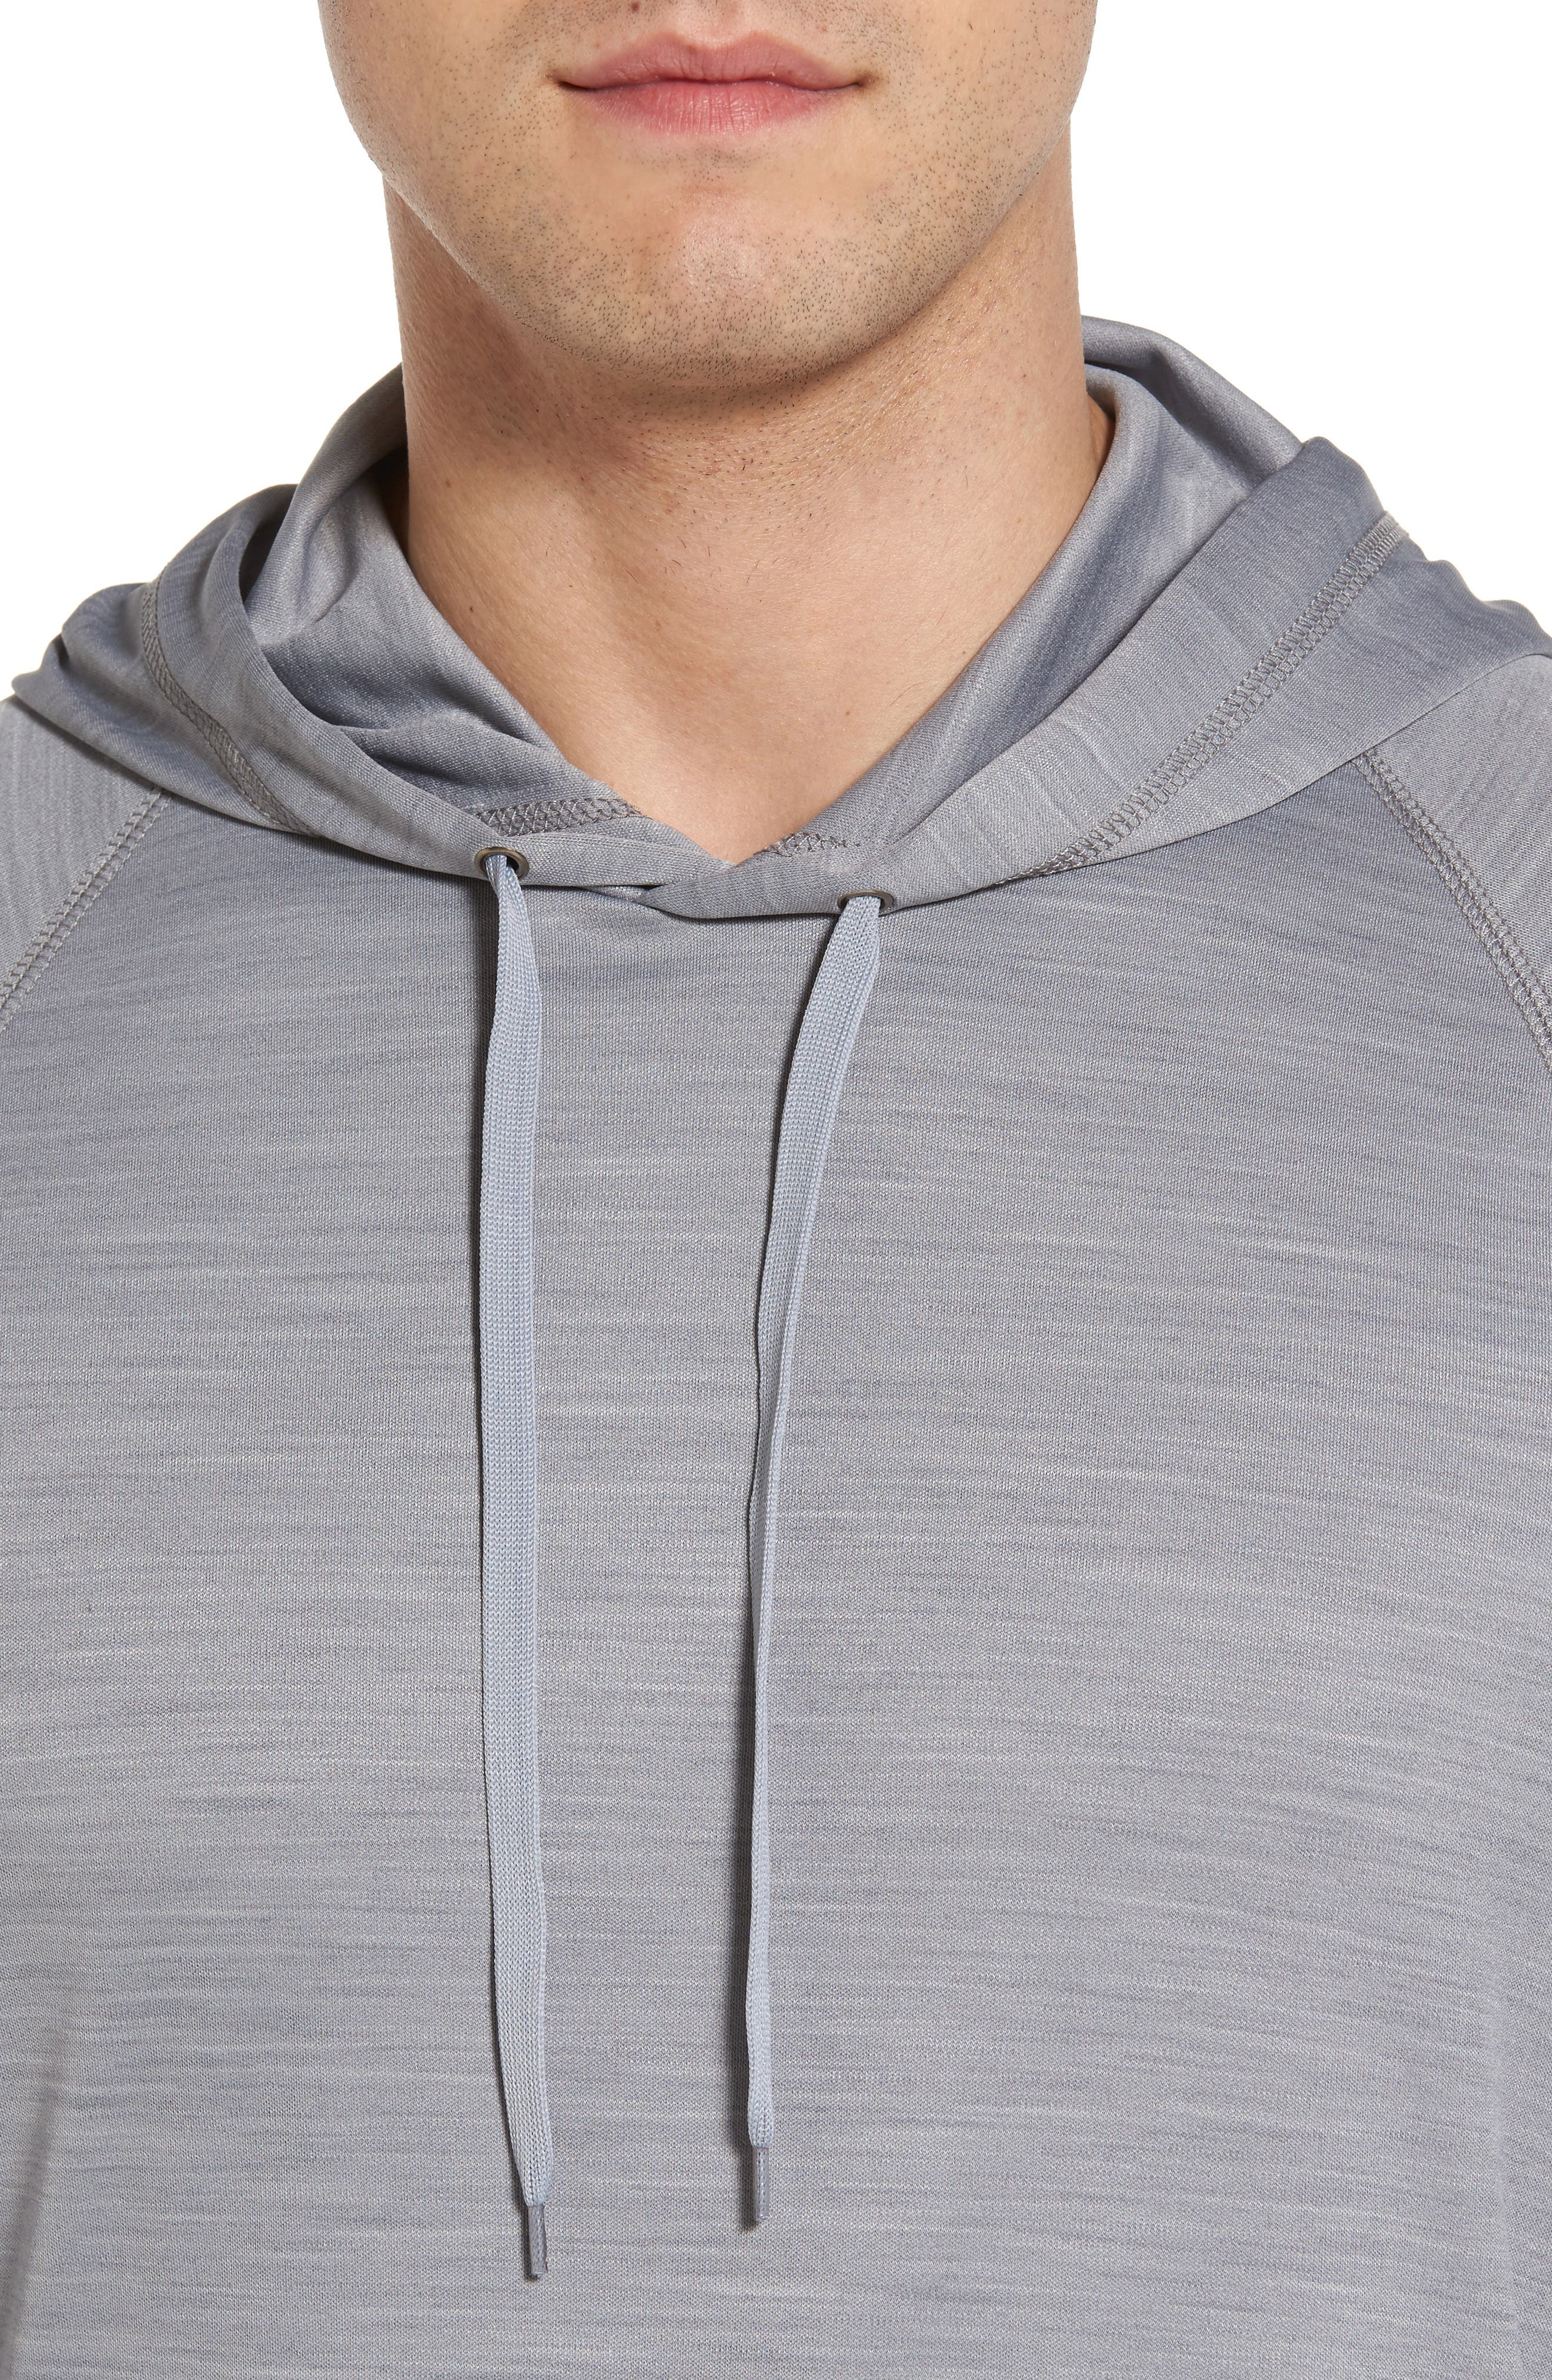 Undercover Hooded Long Sleeve Performance T-Shirt,                             Alternate thumbnail 4, color,                             020